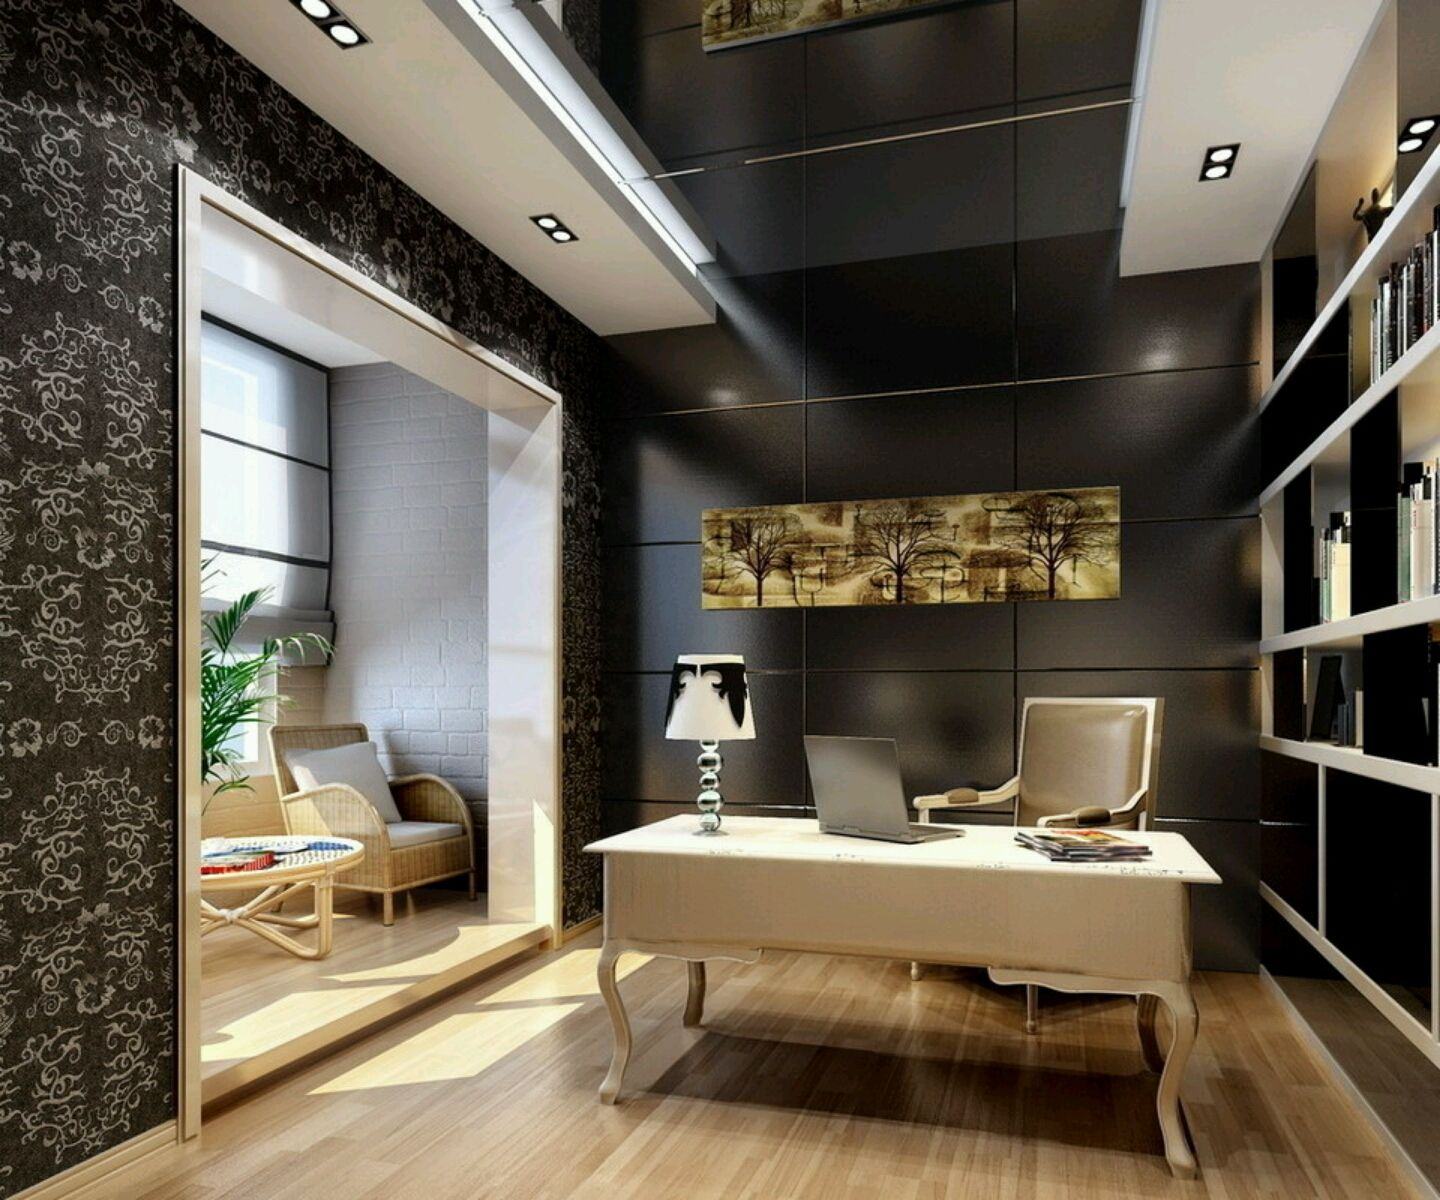 homework spaces and study room ideas you'll love | modern